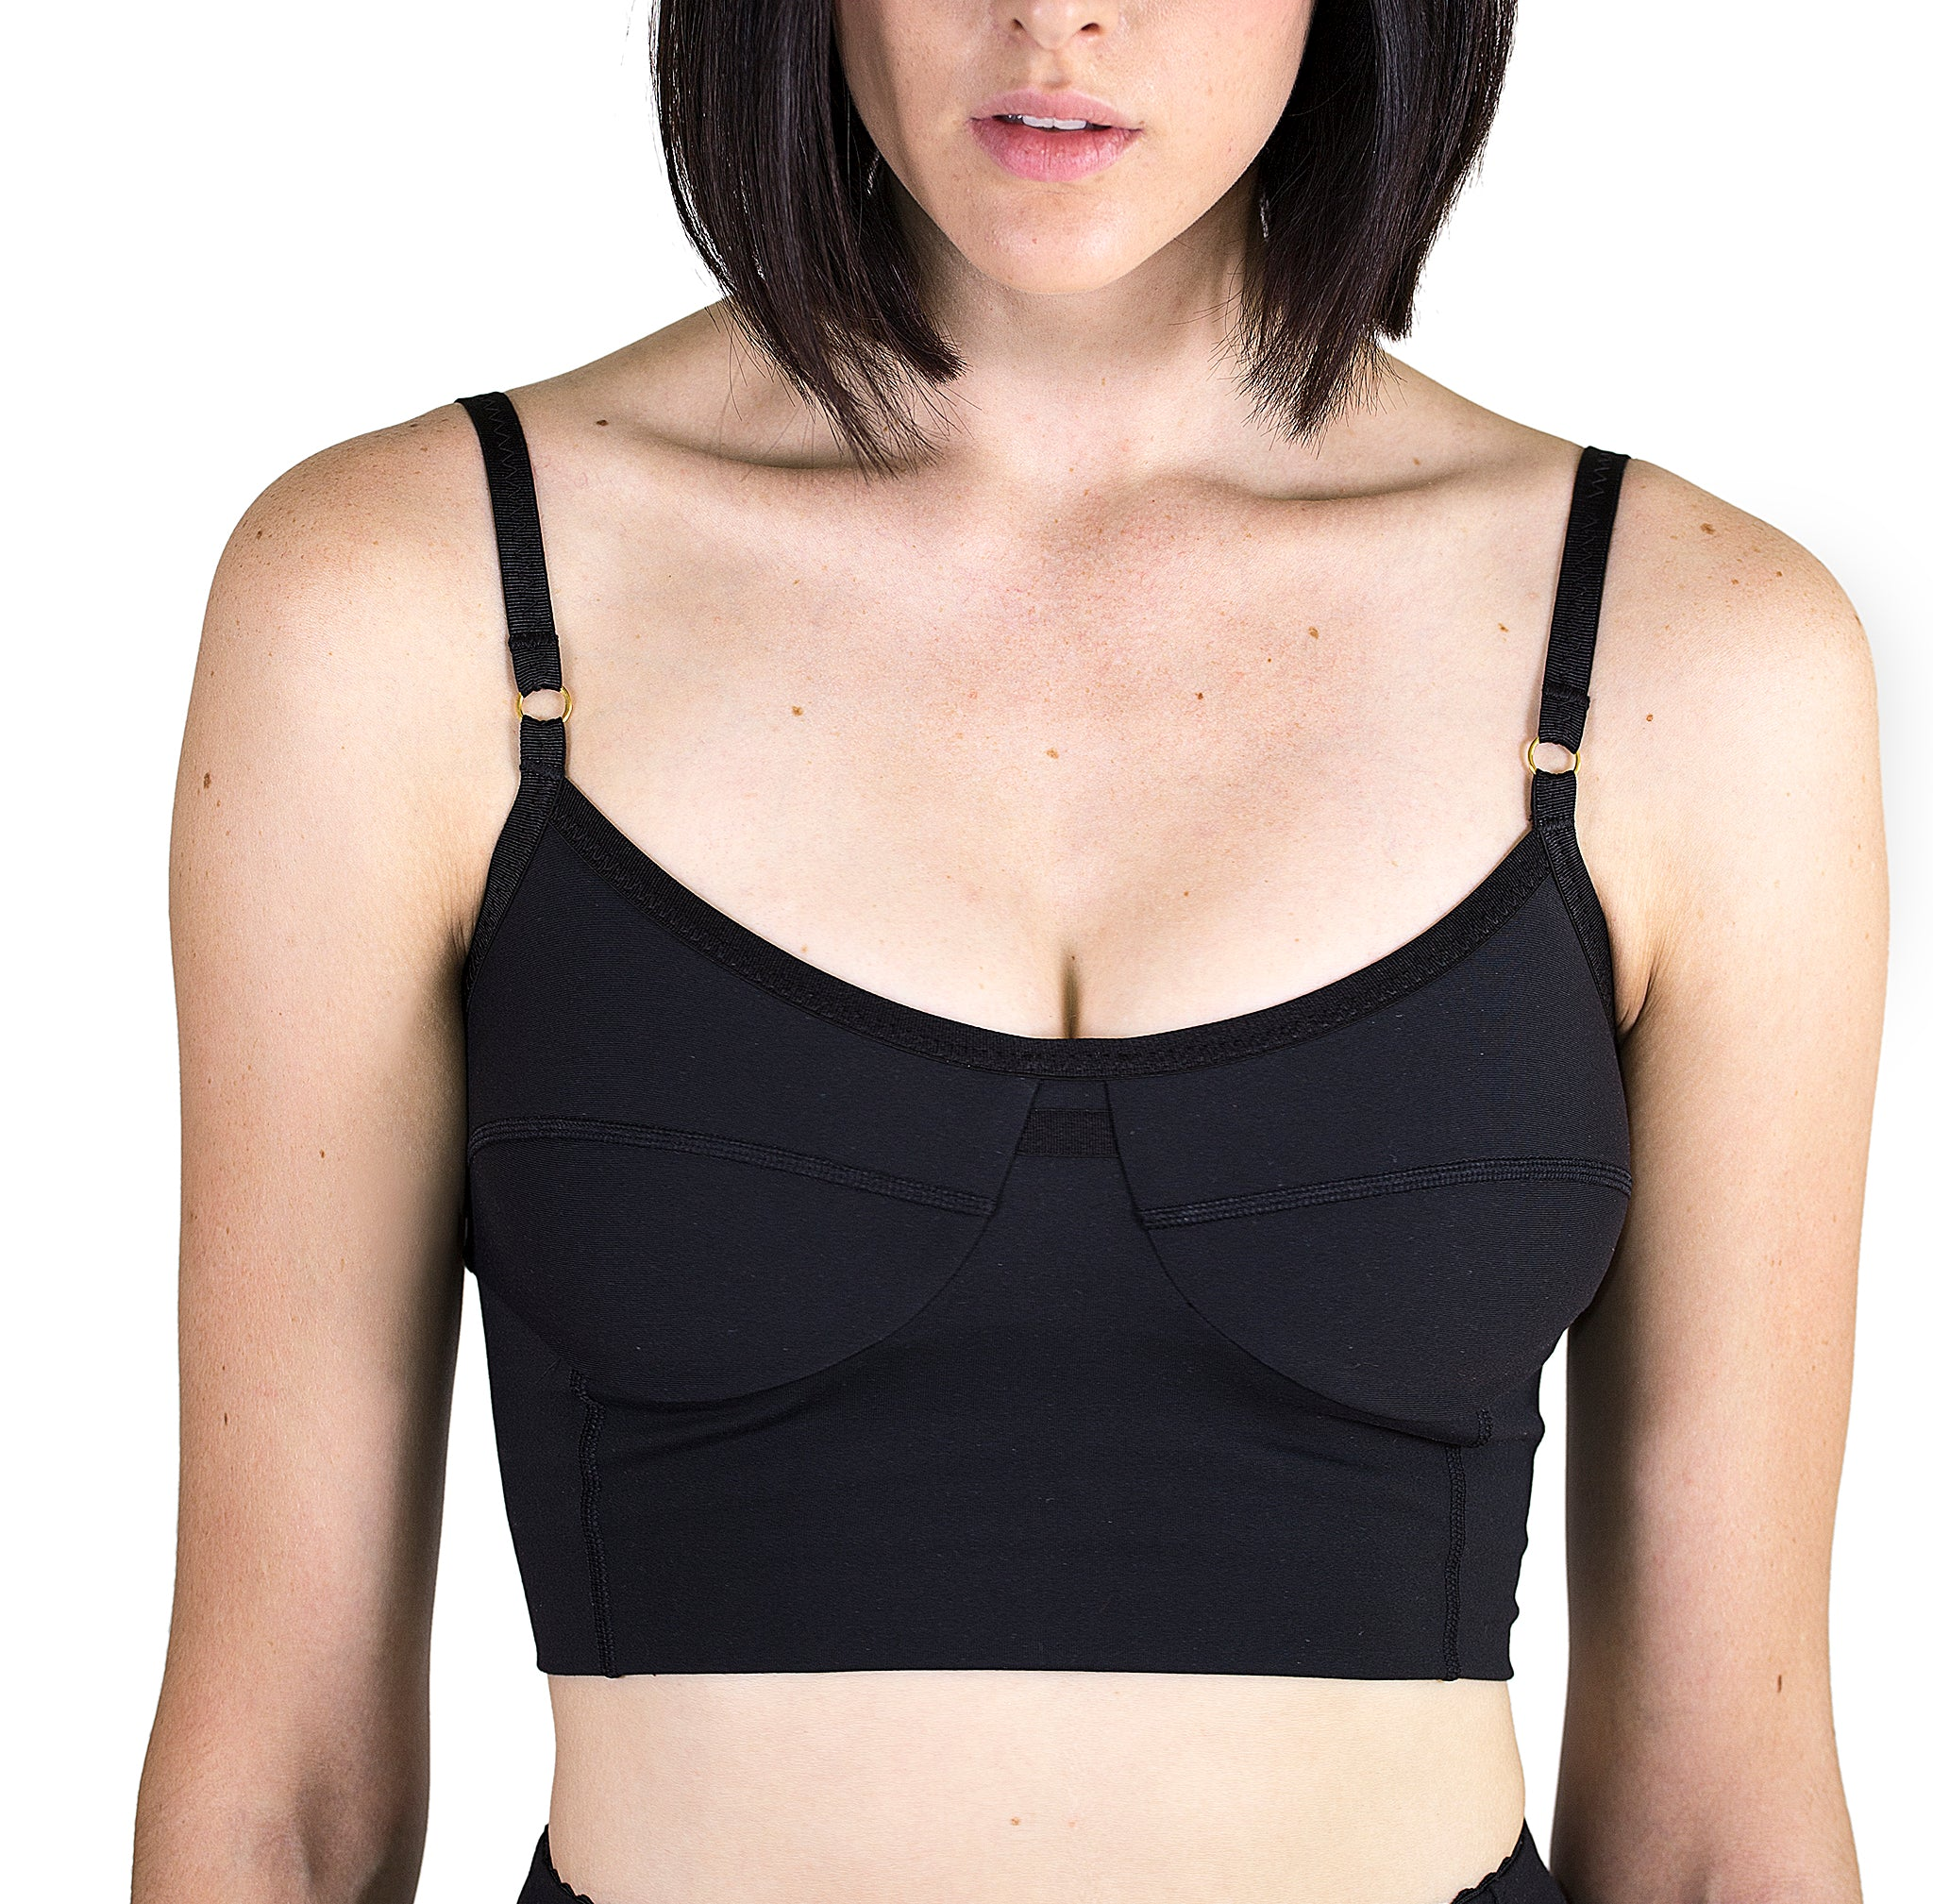 Beautifully designed Bralette in black with grosgrain elastic straps, flattering seam detail and funtional loop at center front.